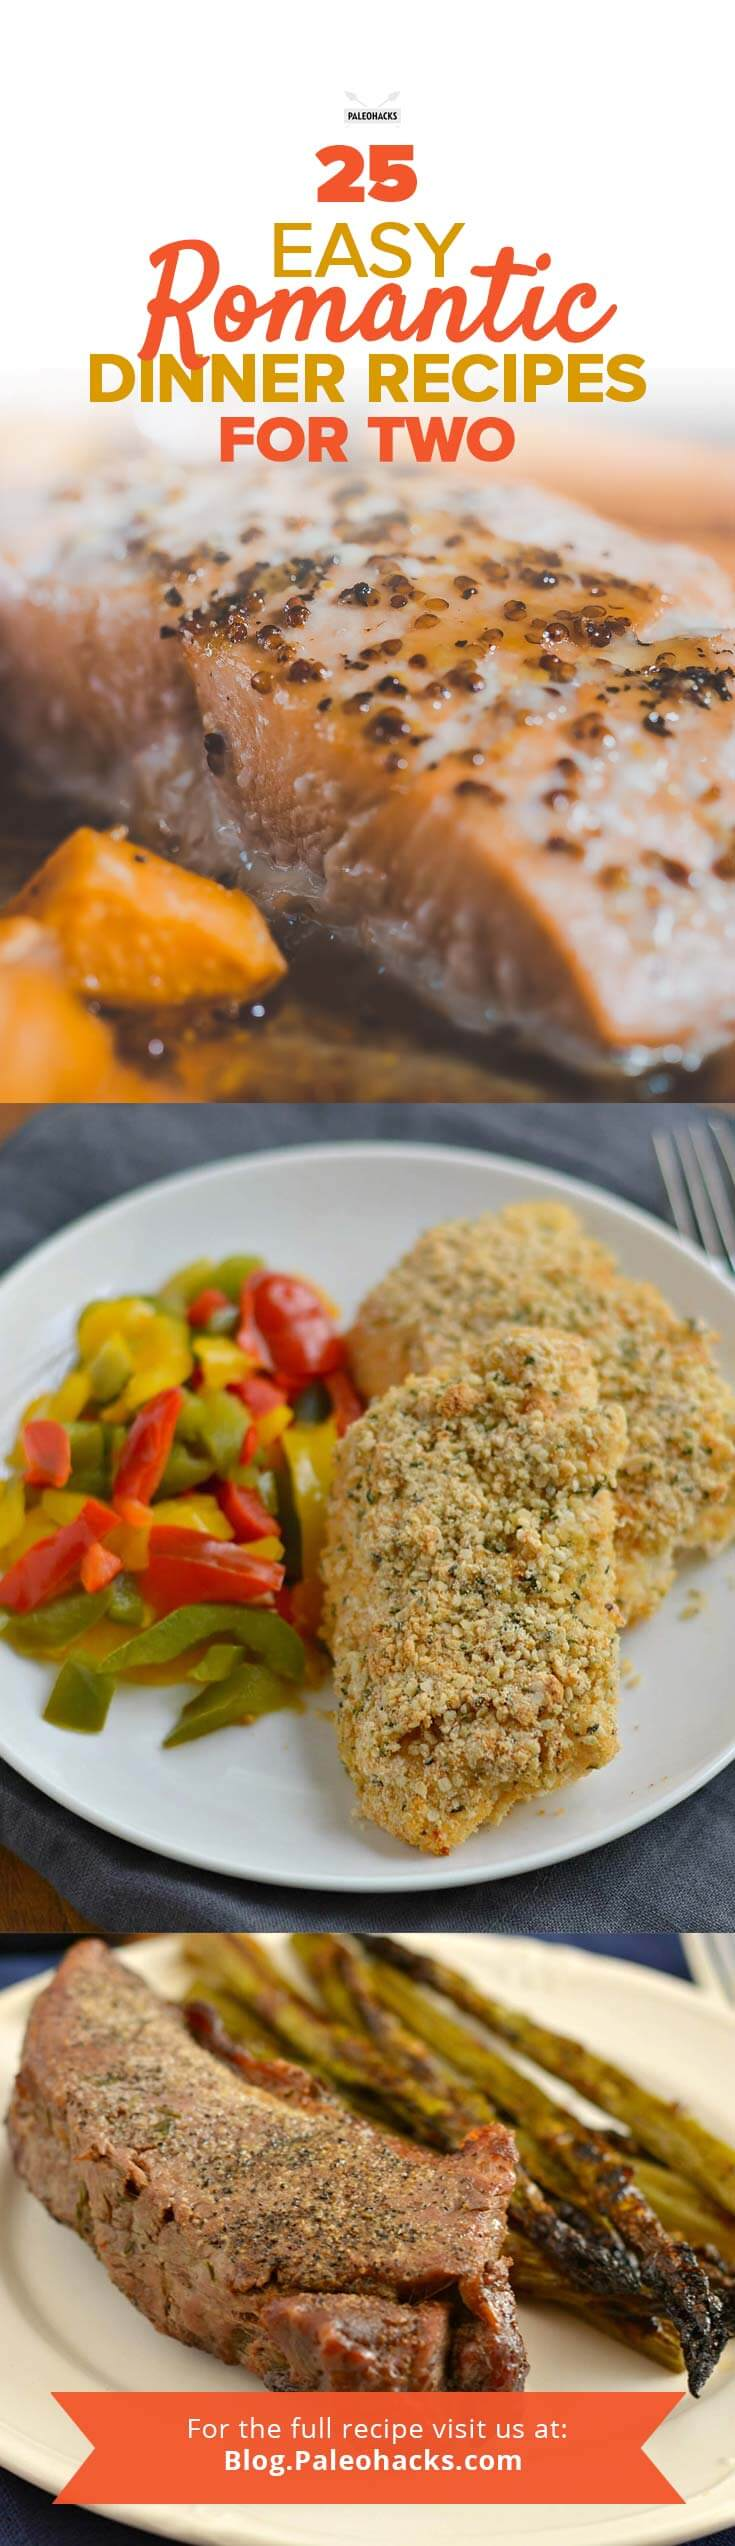 25 easy romantic dinner recipes for two paleohacks for Romantic dinner for 2 recipes